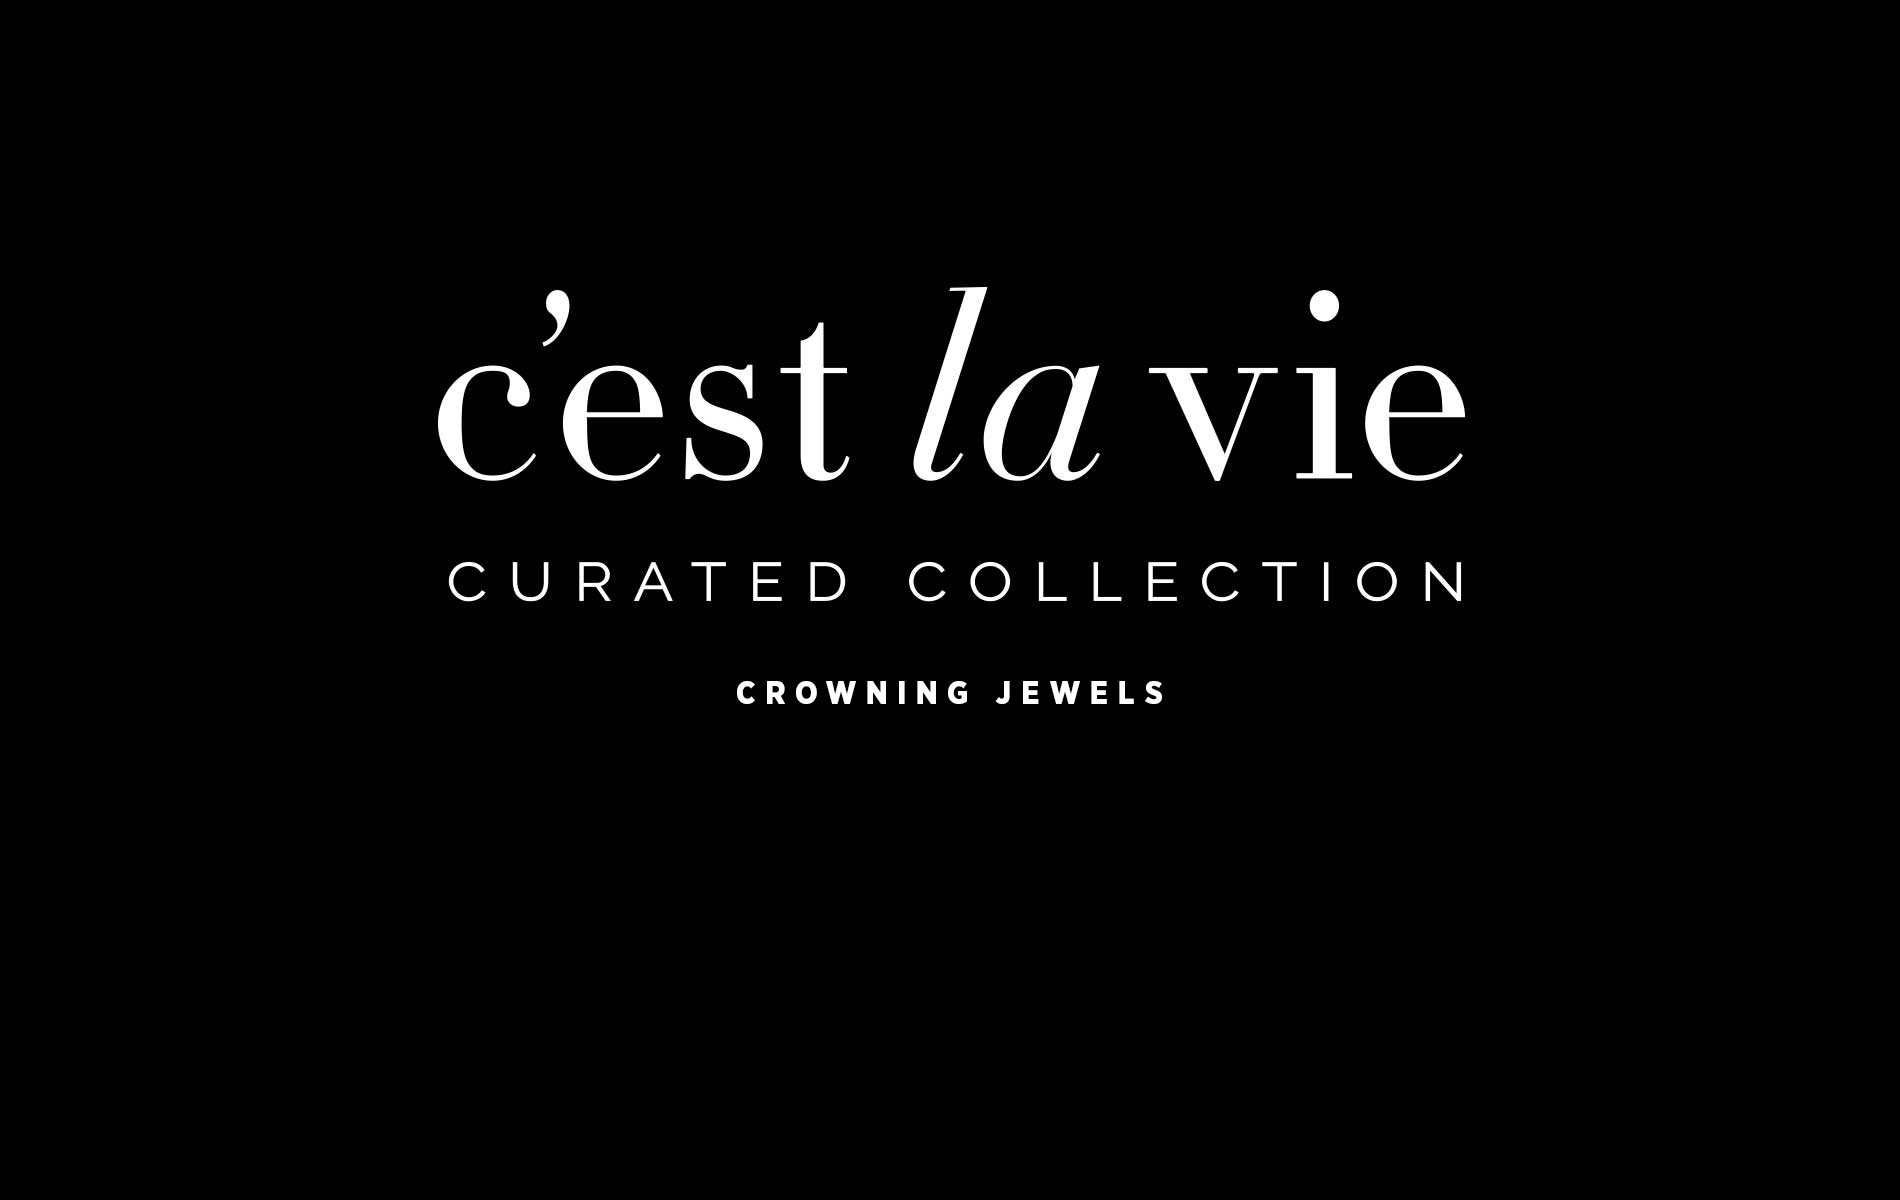 cest la vie, curated collection, crowning jewels